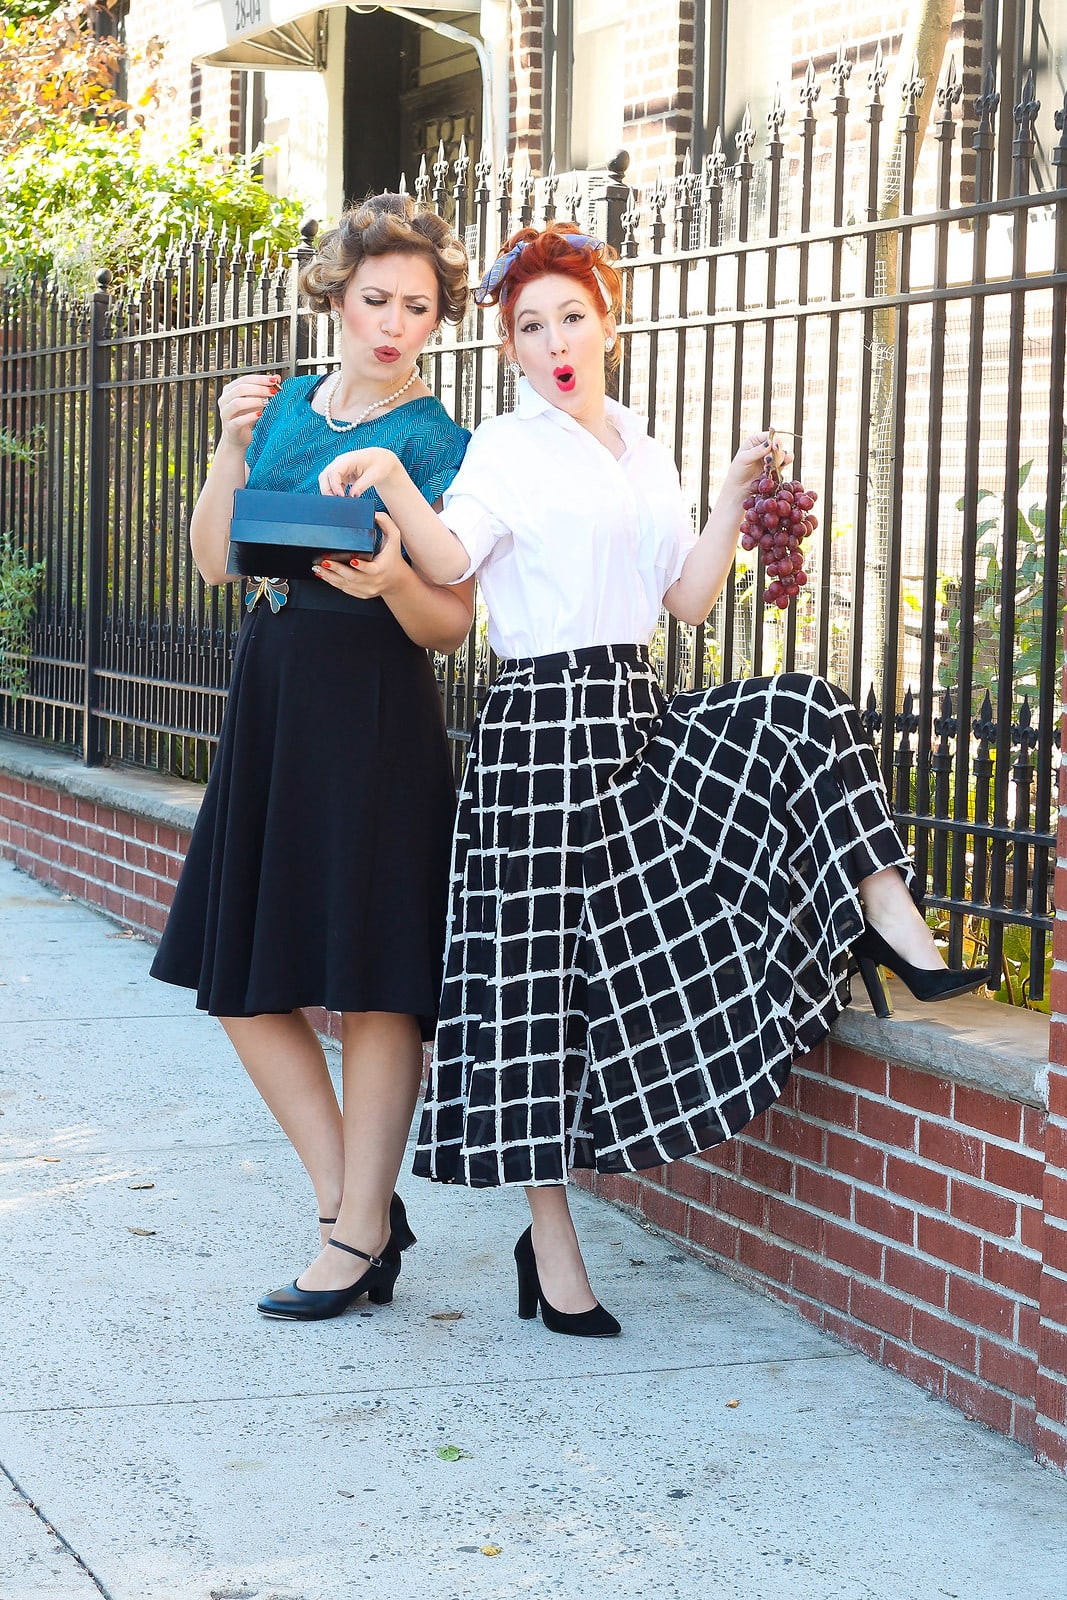 "Lucy & Ethel ""I Love Lucy"" Halloween Costume - Check out these 40 cute and creative Halloween costume ideas for women, couples, families, and friends! #halloween #halloweencostumes #halloweencostumeideas"